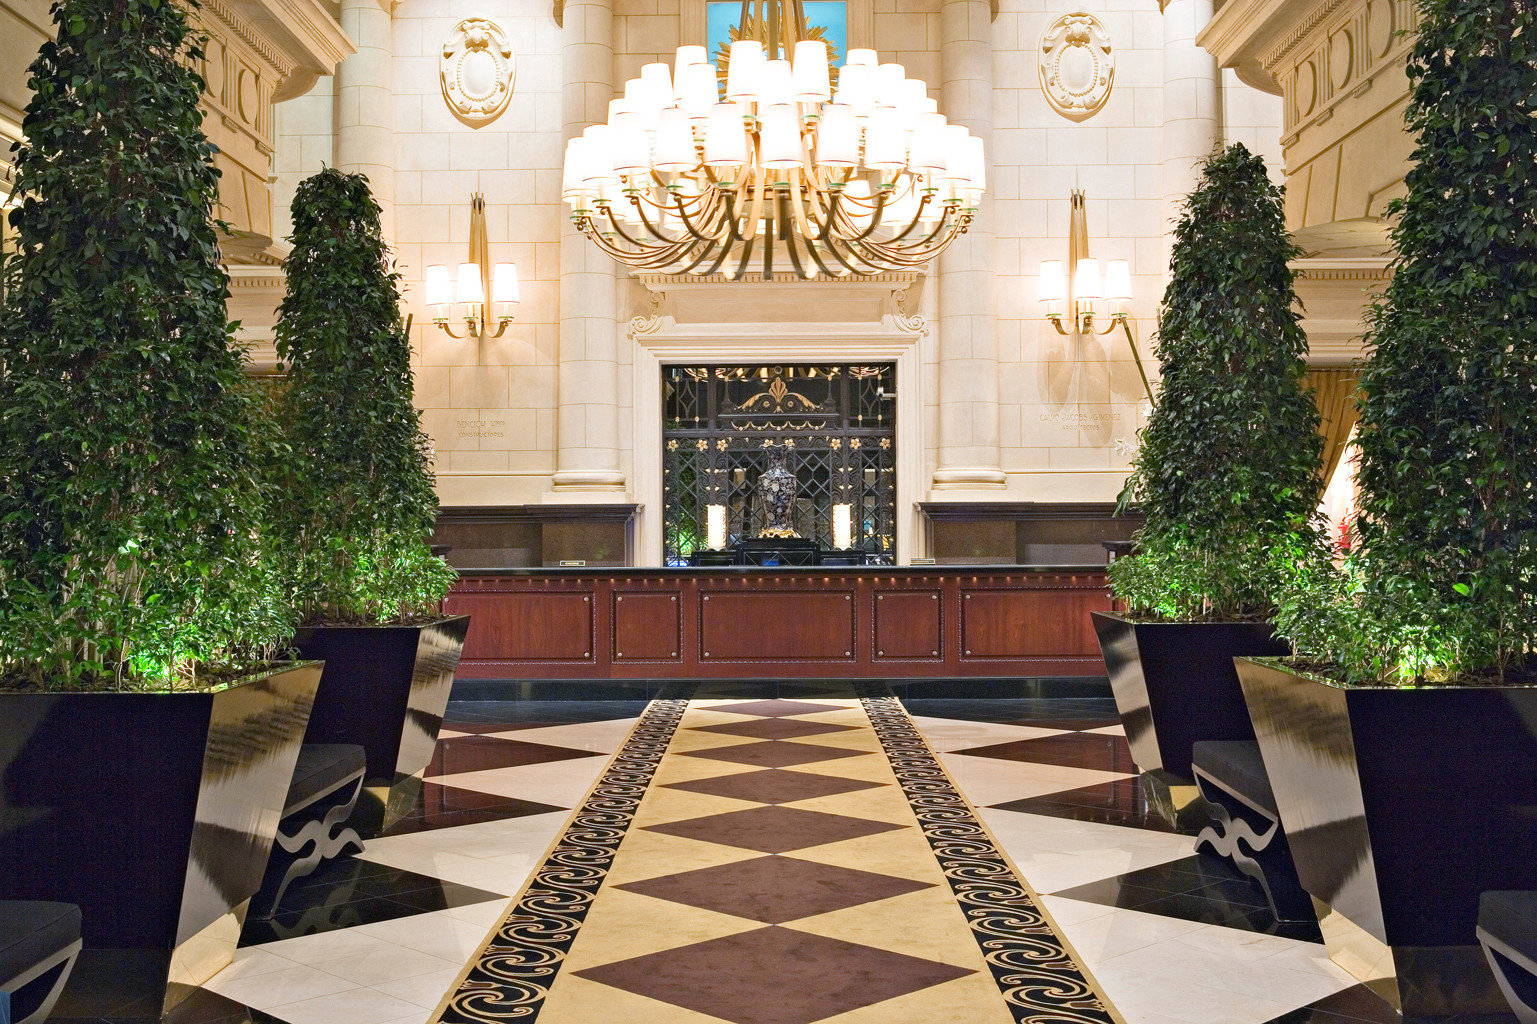 Elegant Lobby Modern tree palace mansion home Courtyard aisle ballroom plant flooring